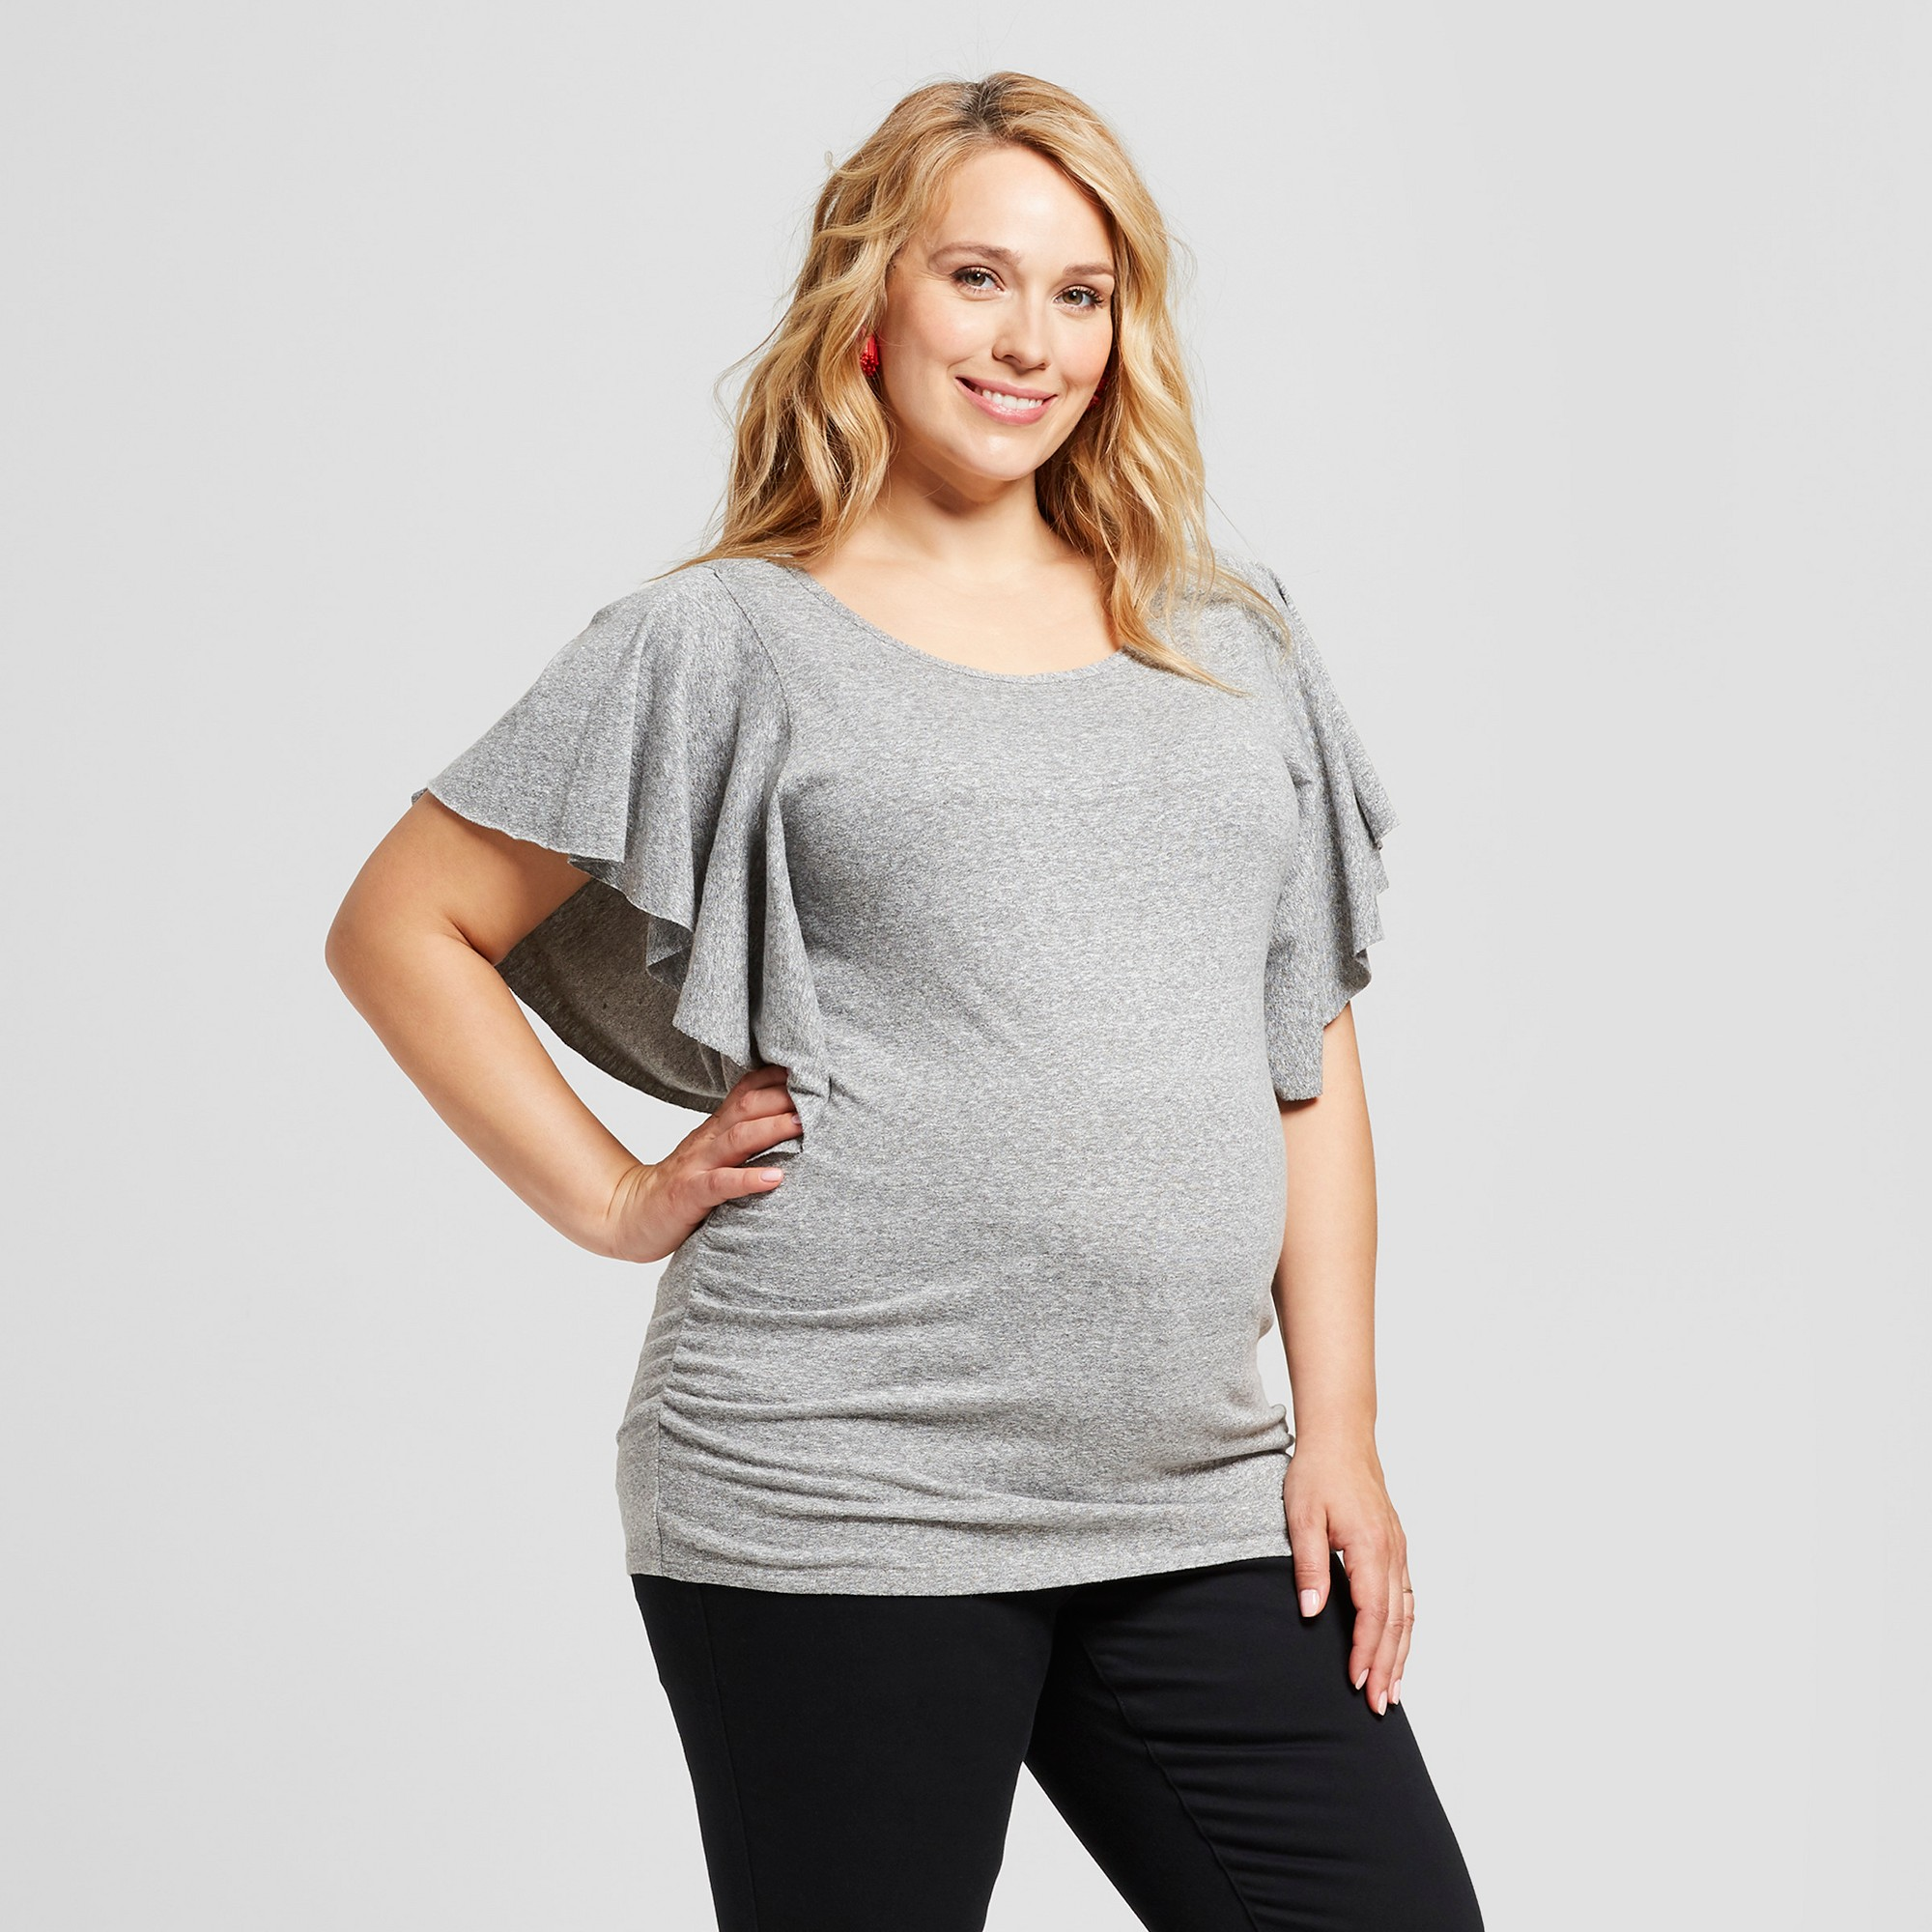 e49a835943955 Maternity Plus Size Flutter Short Sleeve Knit Top - Isabel Maternity by  Ingrid & Isabel Railroad Gray 4X